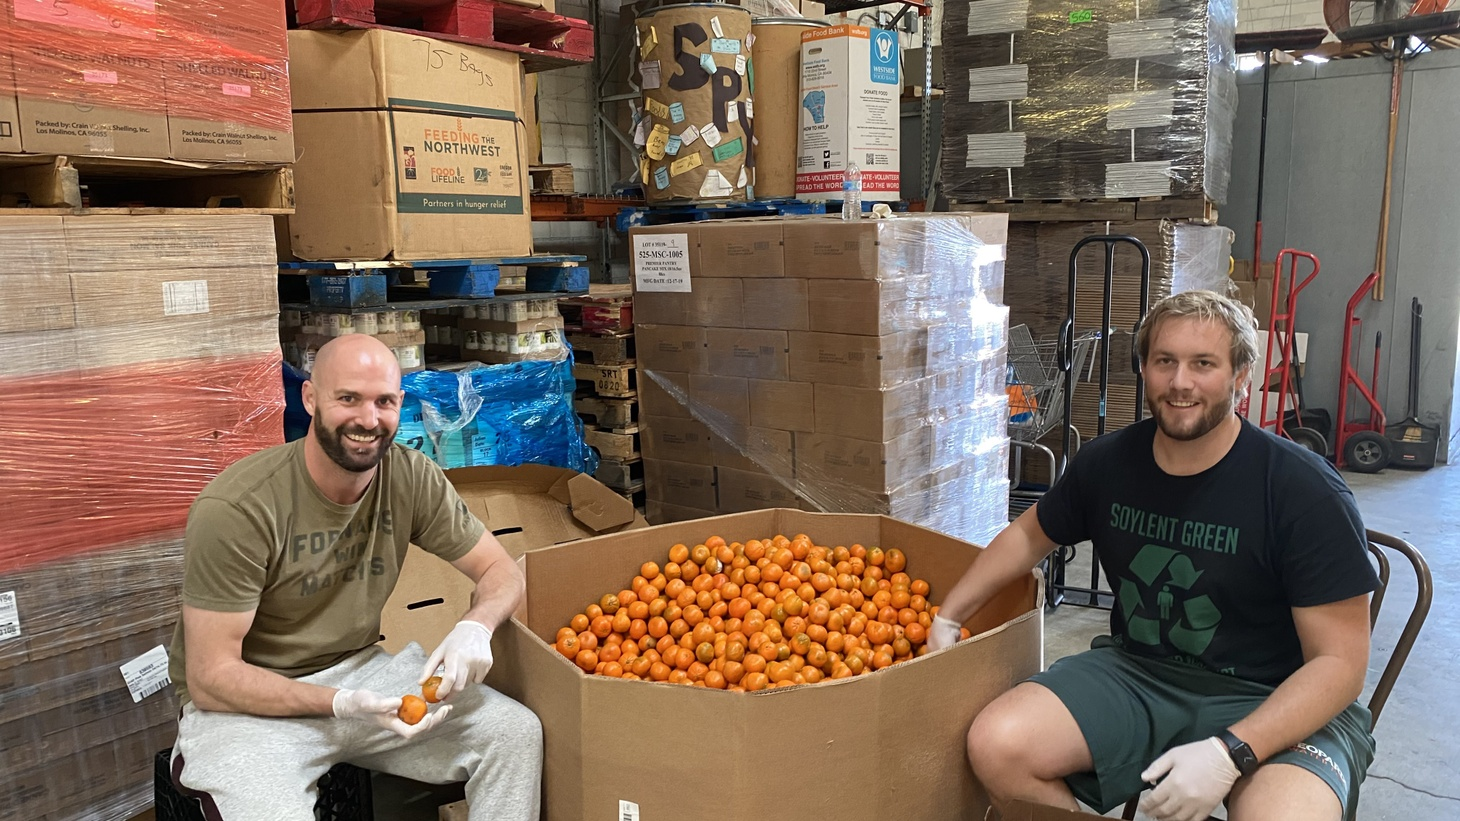 Ian Snook (left) and Viken Huening (right) working at a food bank before masks were being used.